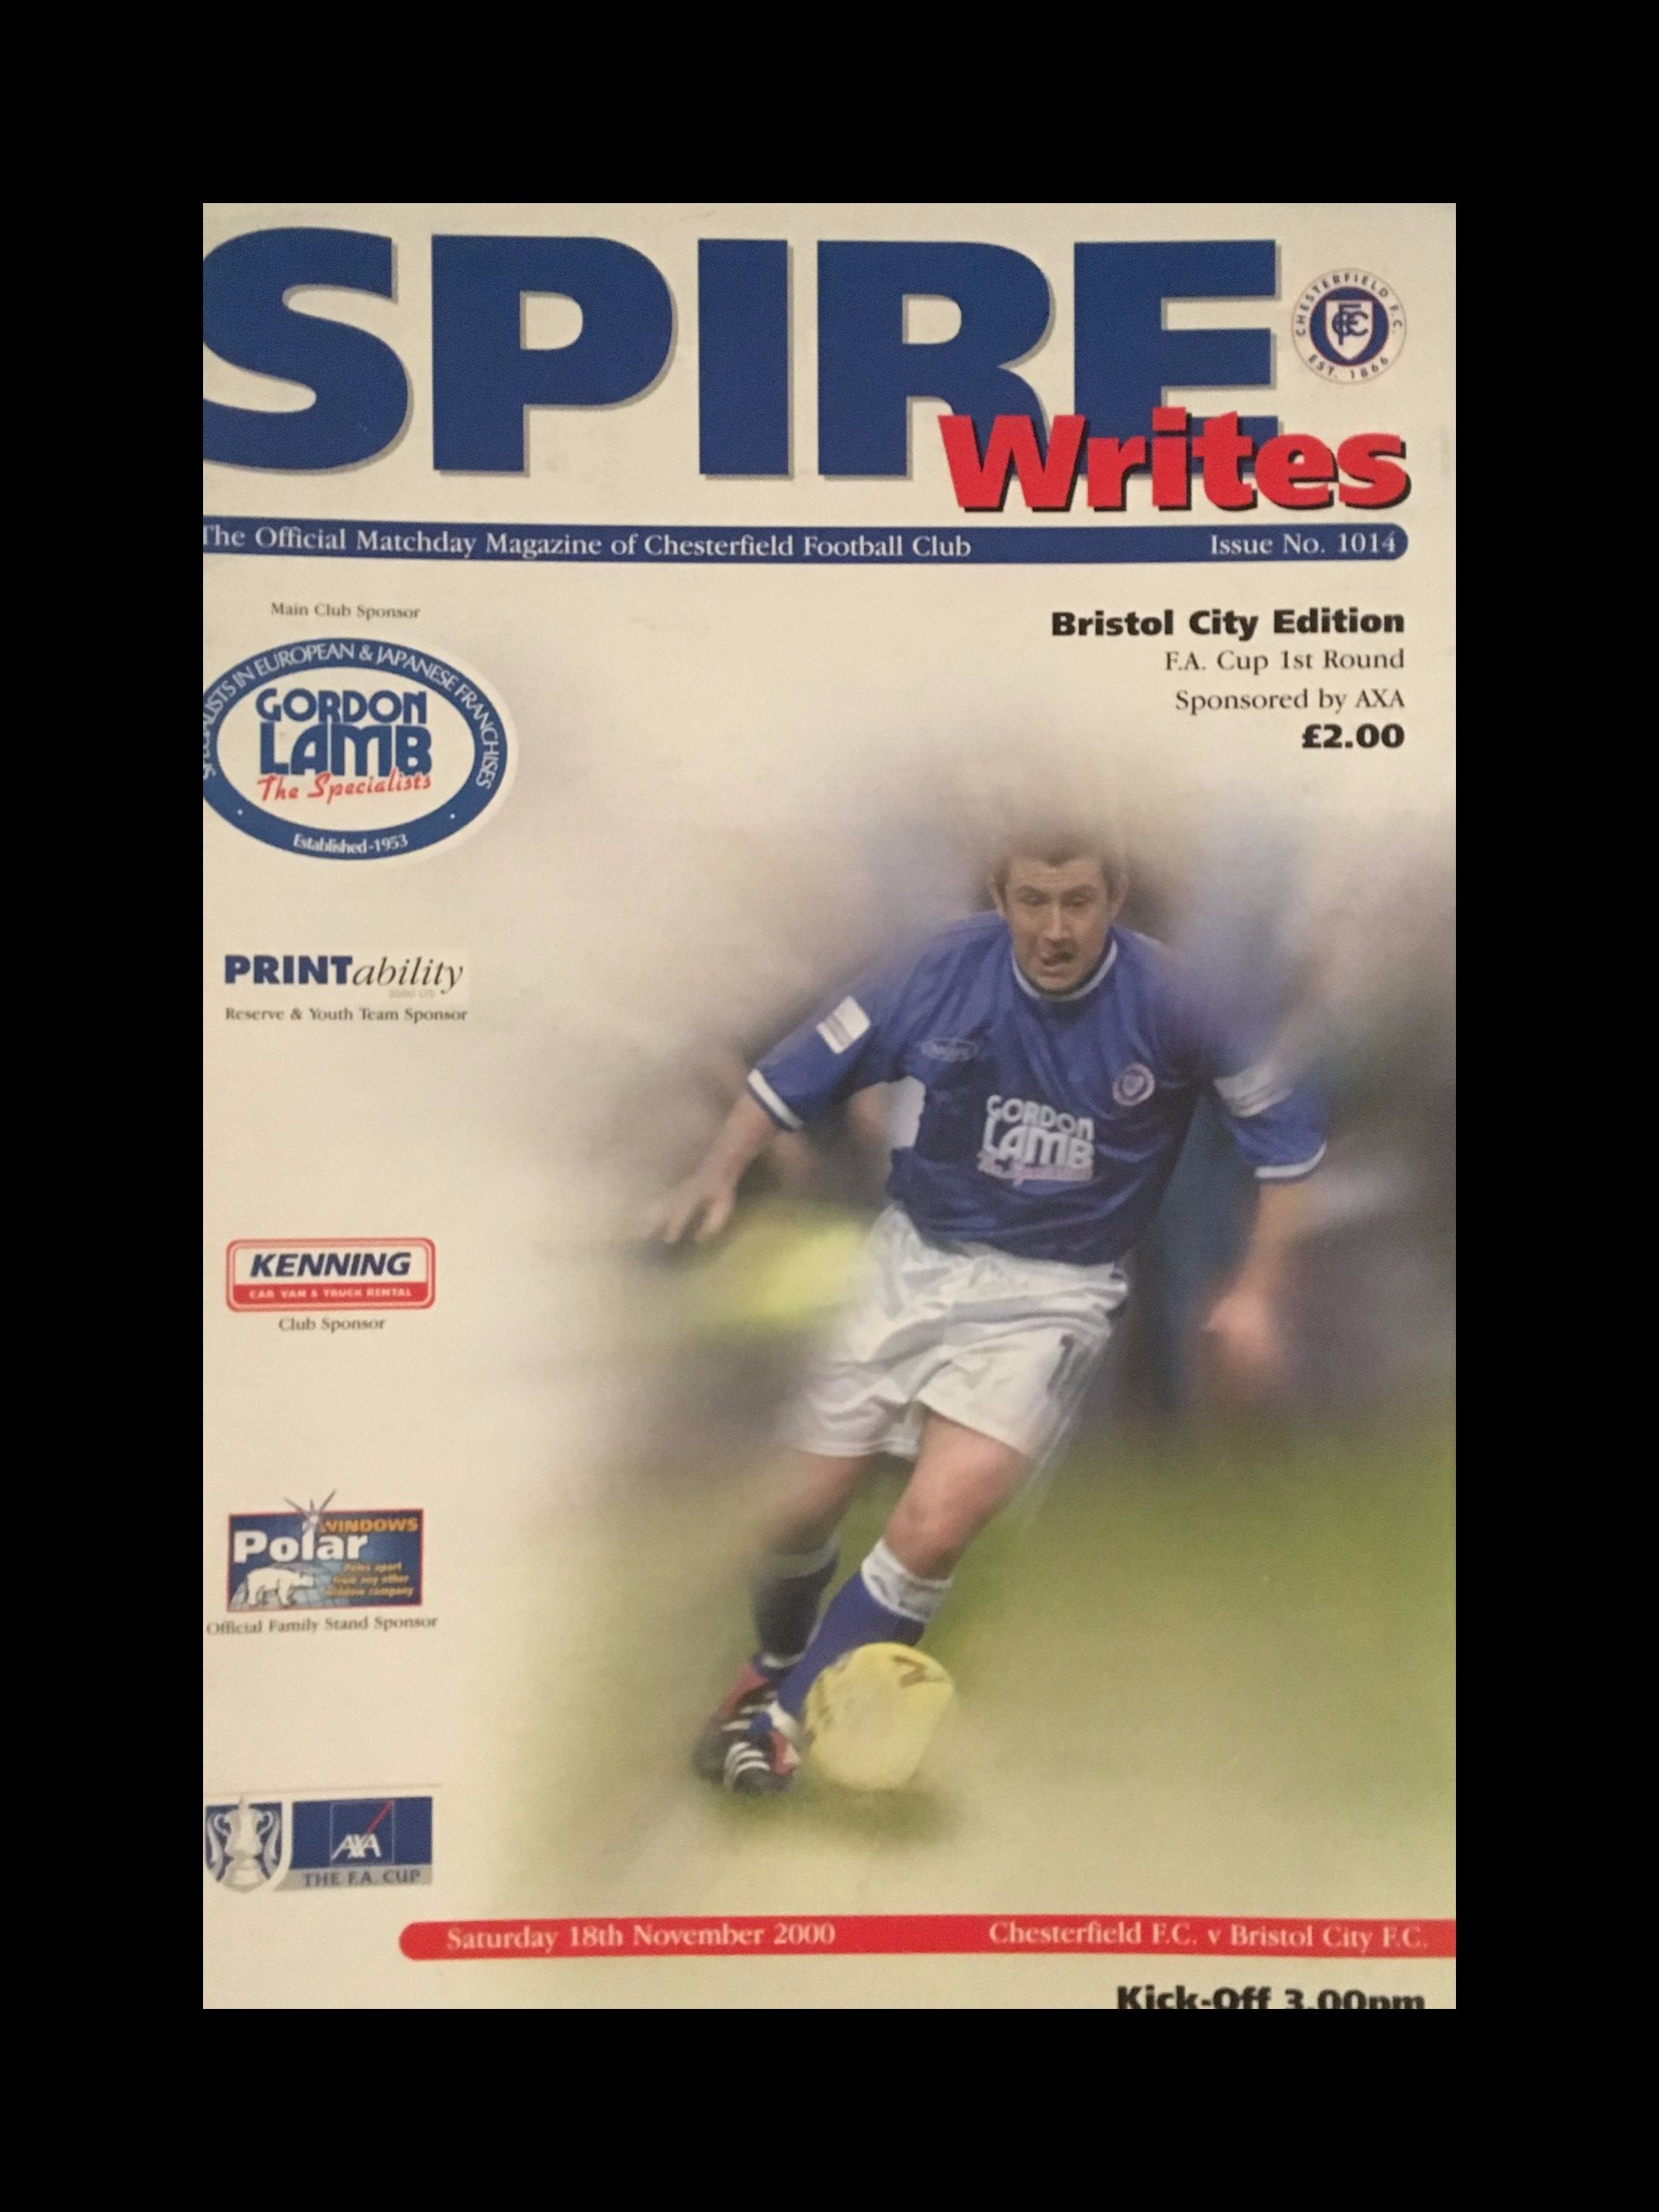 Chesterfield v Bristol City 18-11-2000 Programme